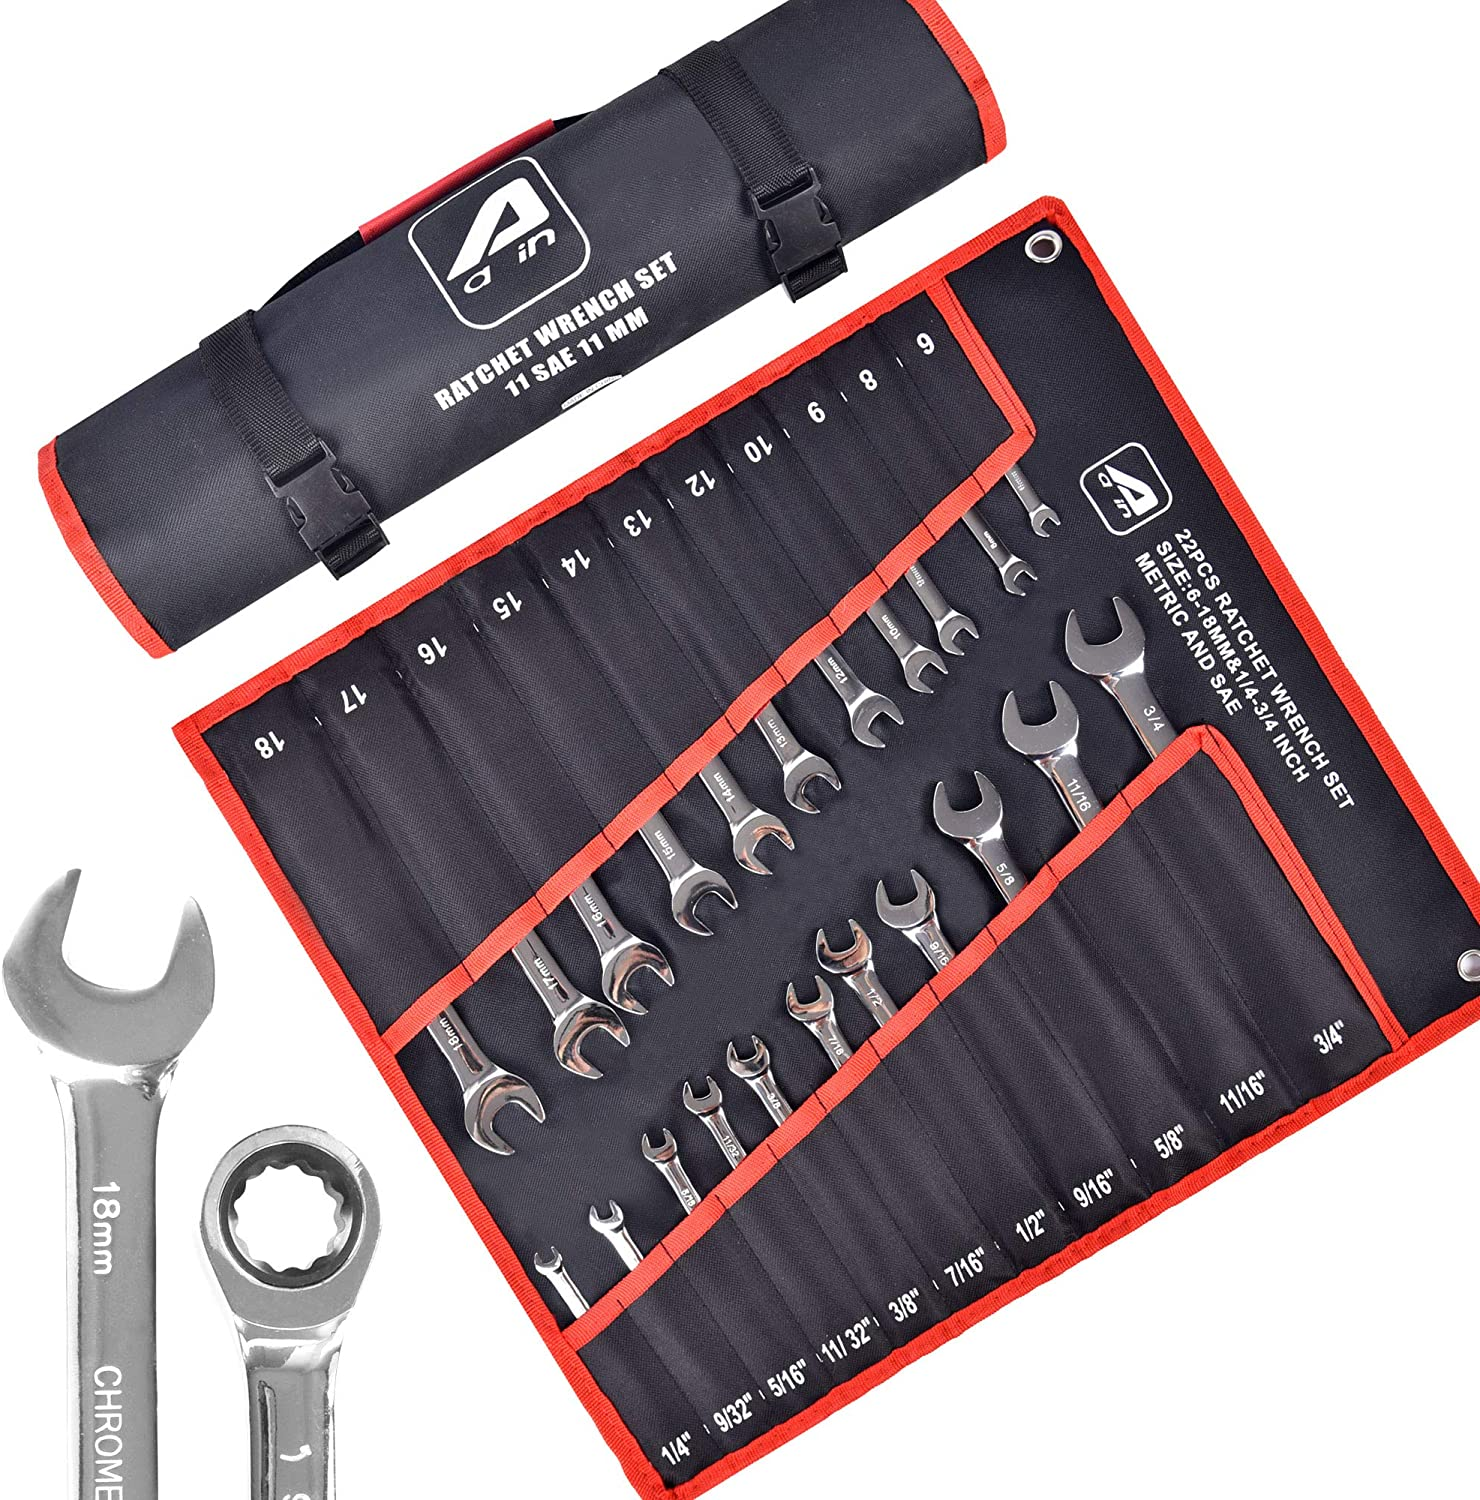 Aain A22PC SEAL limited product Fees free 22-Piece Ratcheting Wrench SAE Metric 12-Point Set